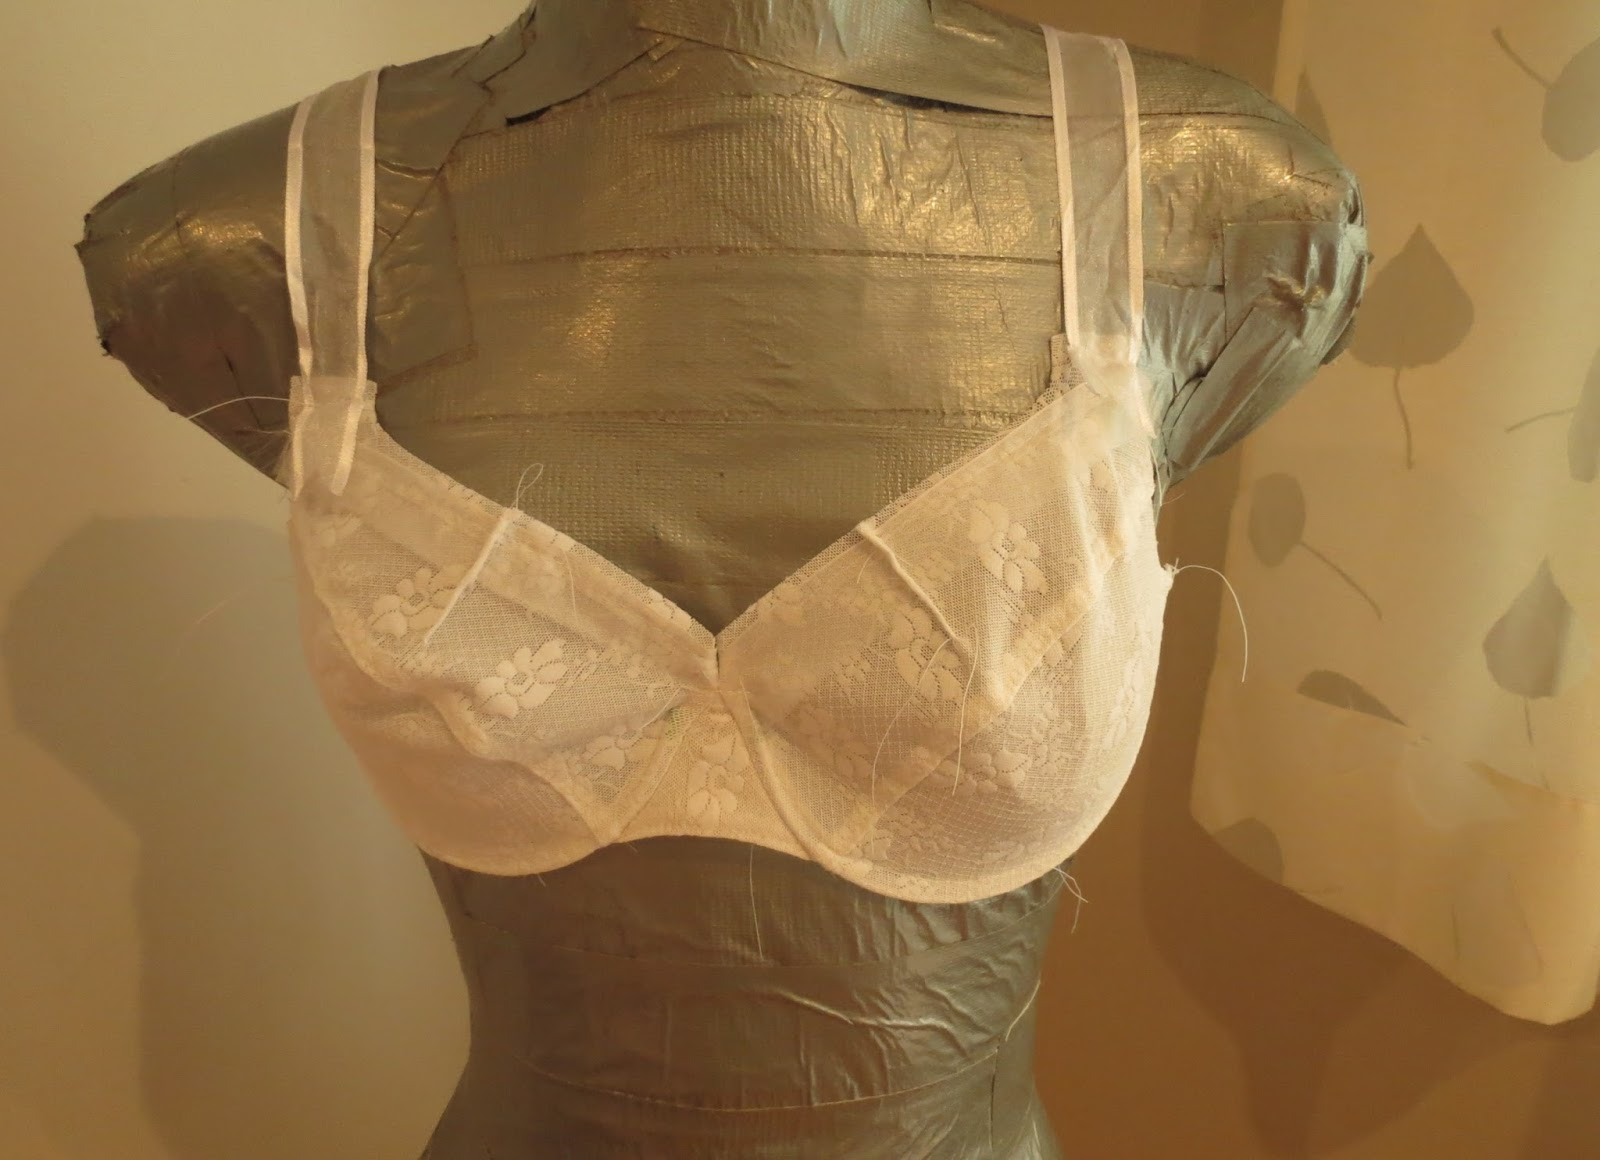 The Sewing Lawyer August 2013 Set Bra Aa8 So Here Is My Fitting Its Single Layer Made Out Of Some Lycra Fabric I Have A Lot And Basted Together In Pretty Rudimentary Fashion